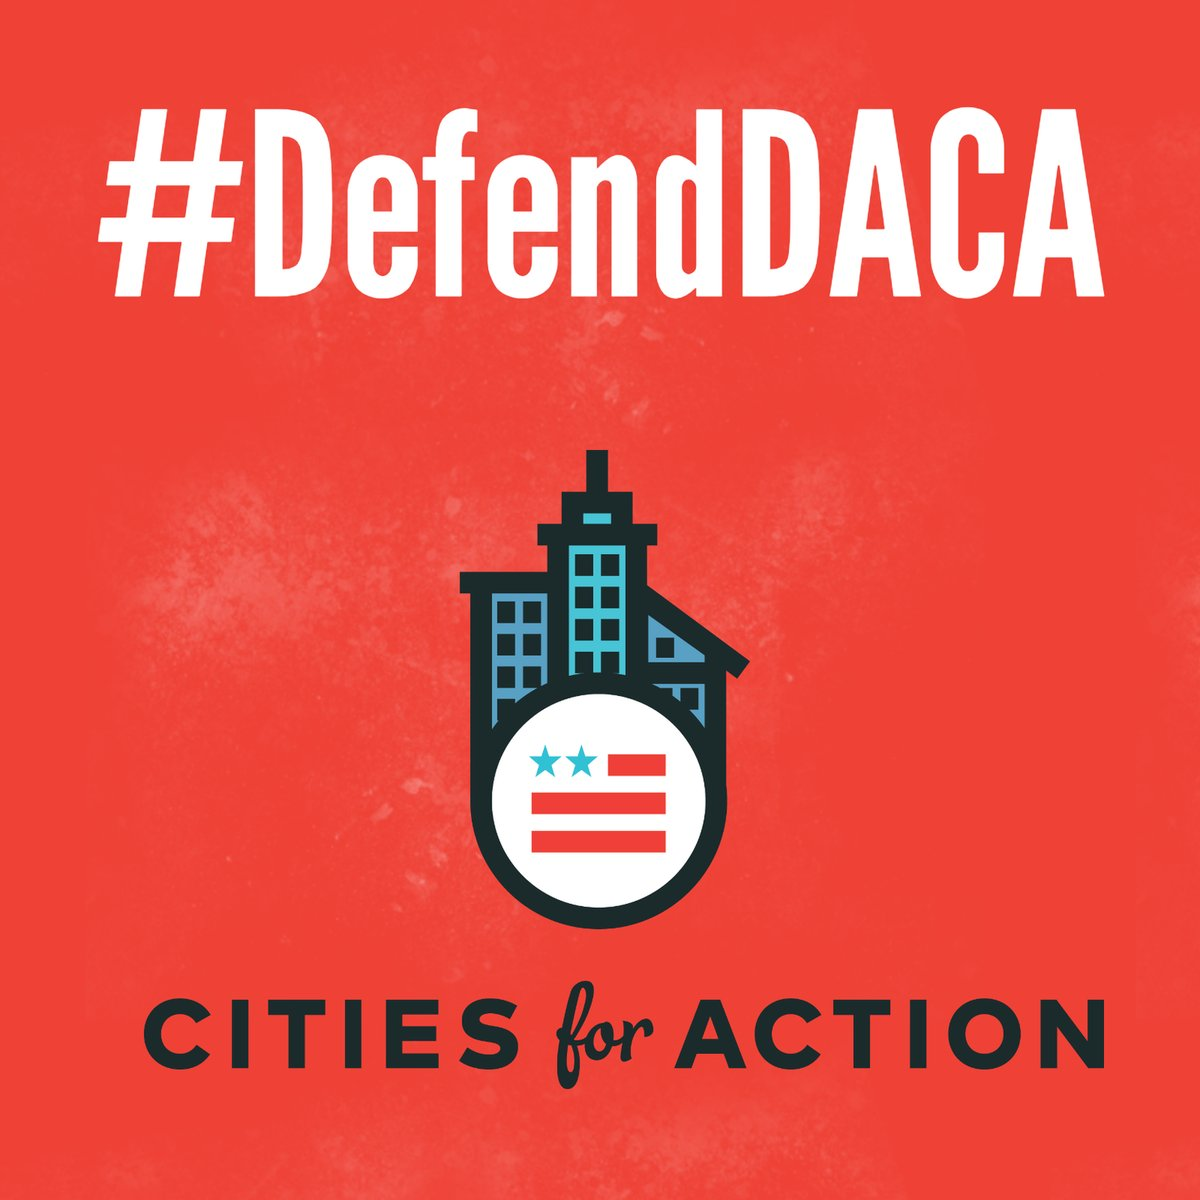 #DACA supports the million of children who've only ever known the US as home. #DefendDACA